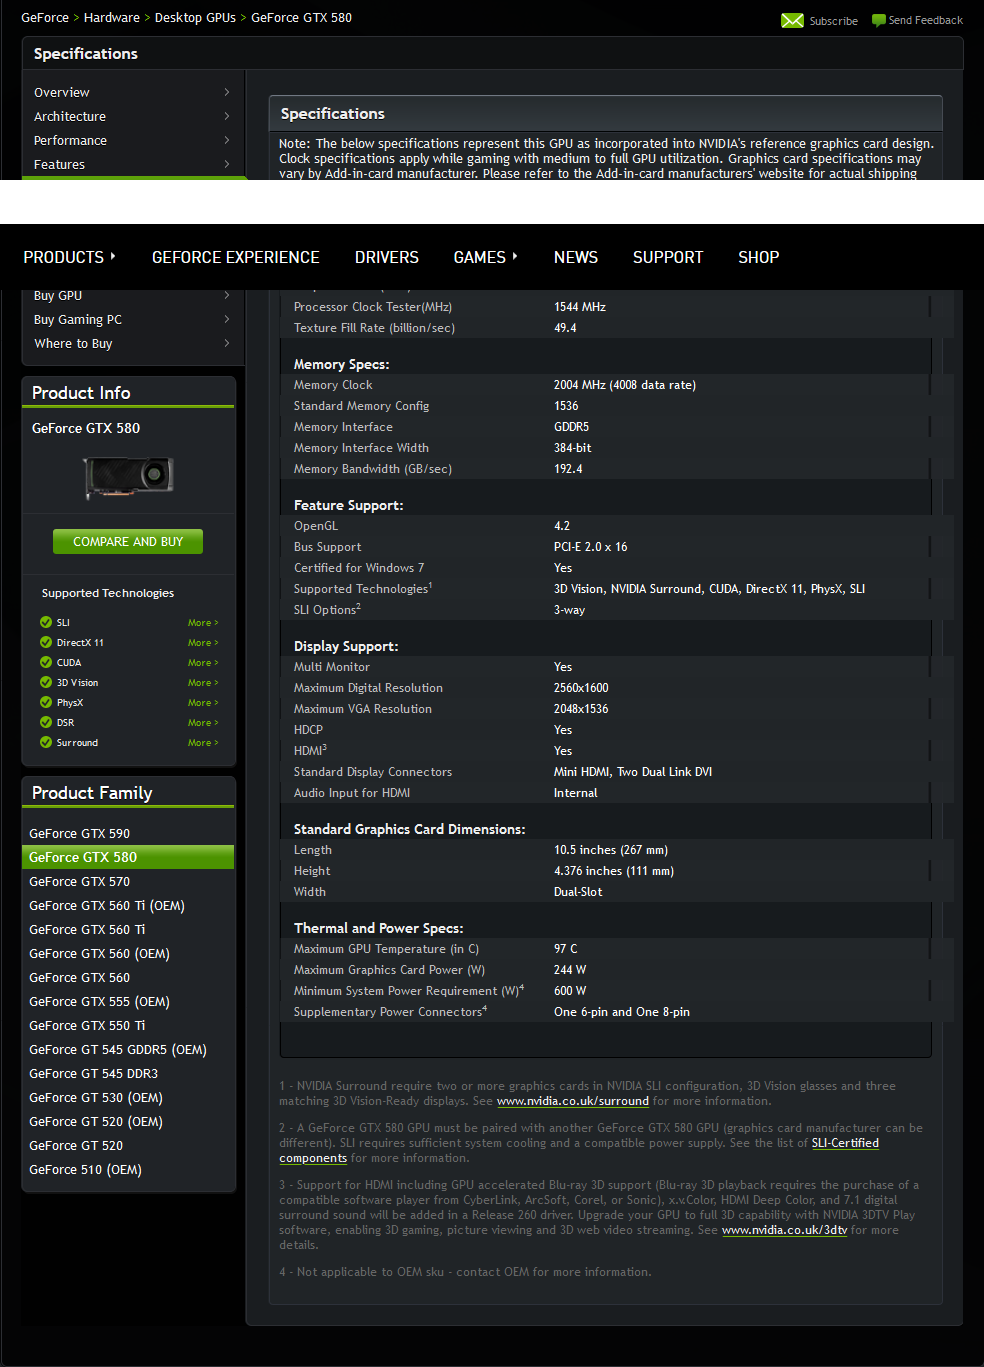 GeForce GTX 580 Specifications.png